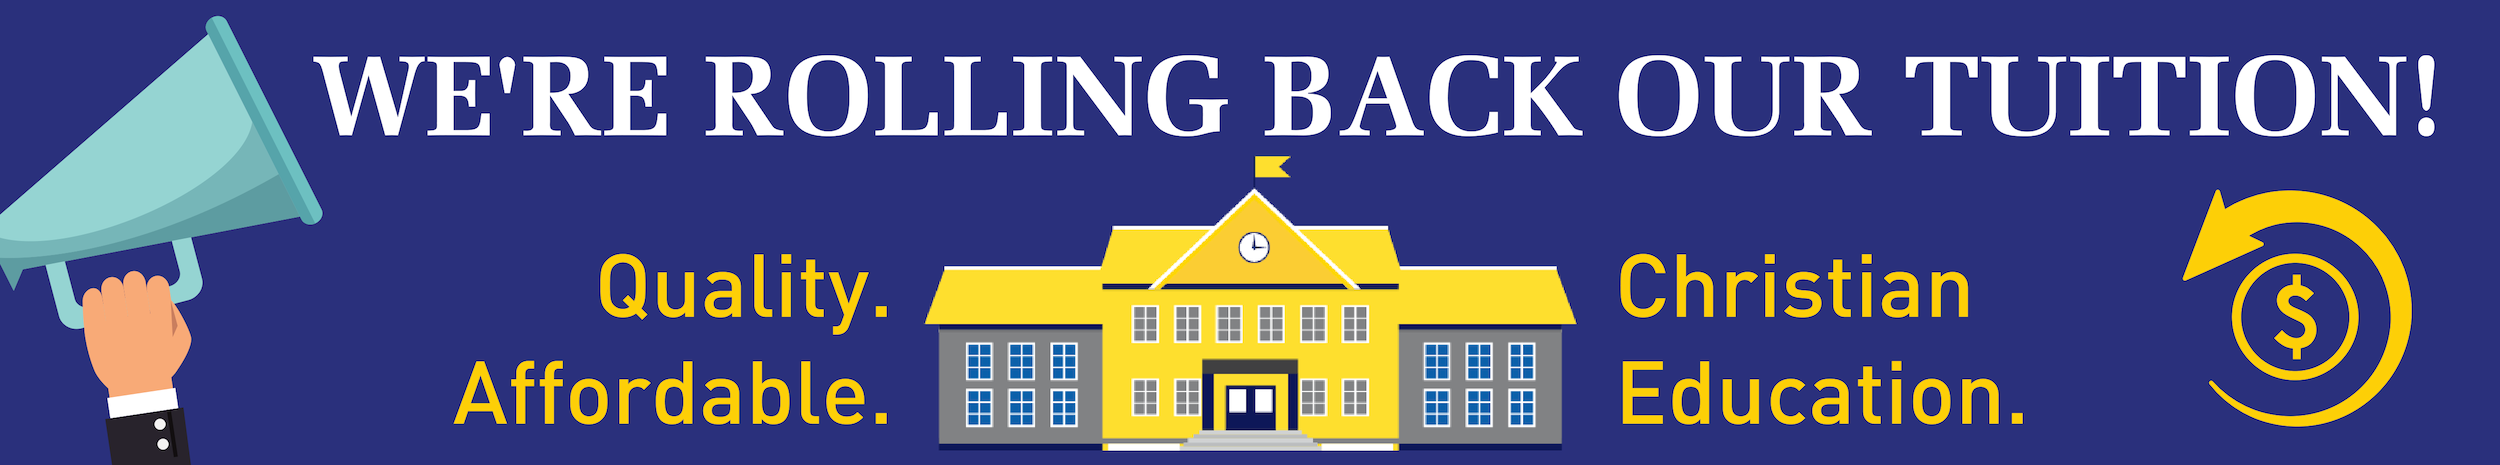 We're rolling back our tuition rates for 2019/20!